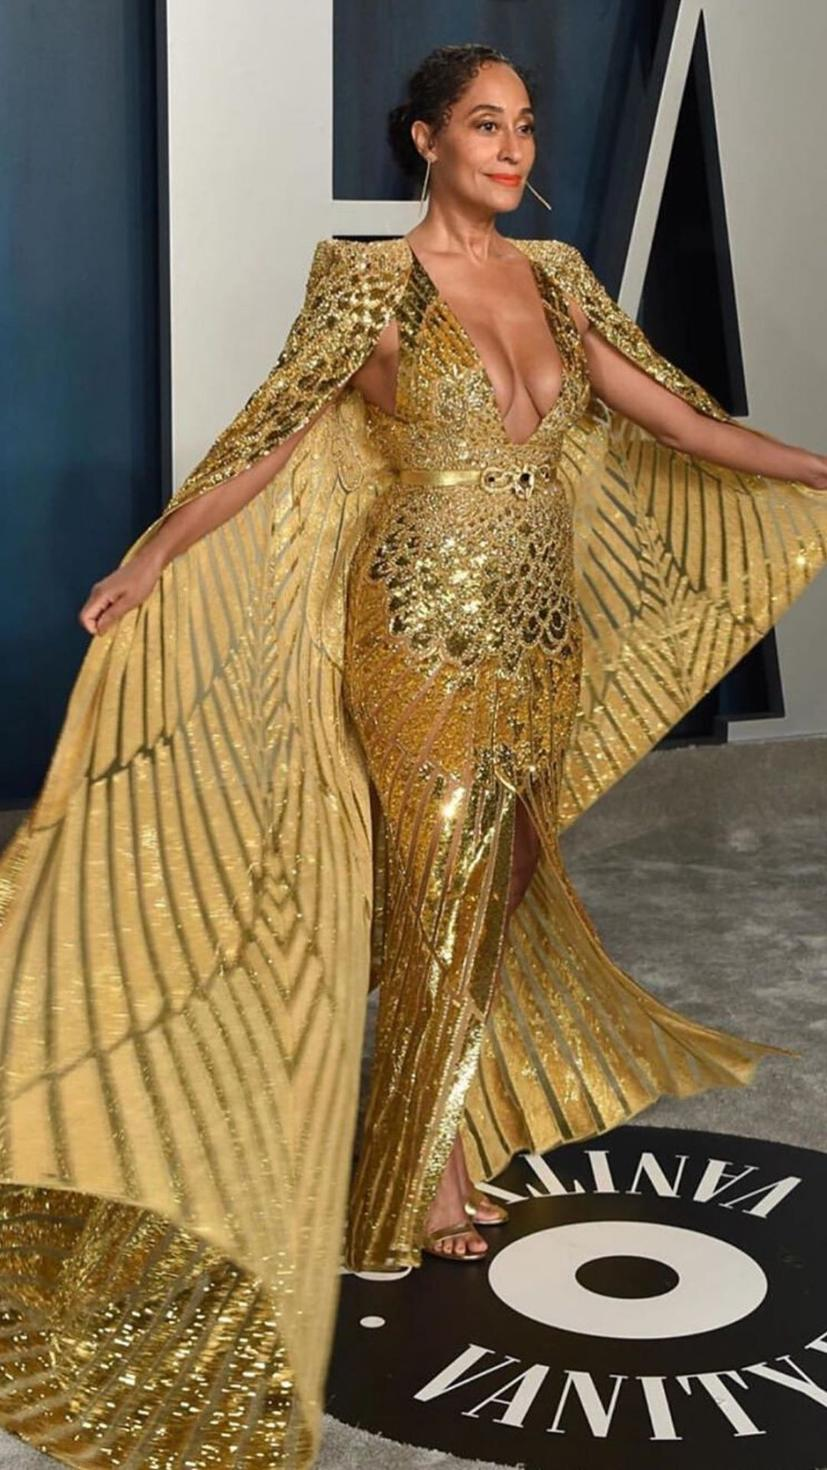 Tracee Ellis Ross stuns in a golden Zuhair Murad gown, Jennifer Meyer jewellery, and Gianvito Rossi shoes